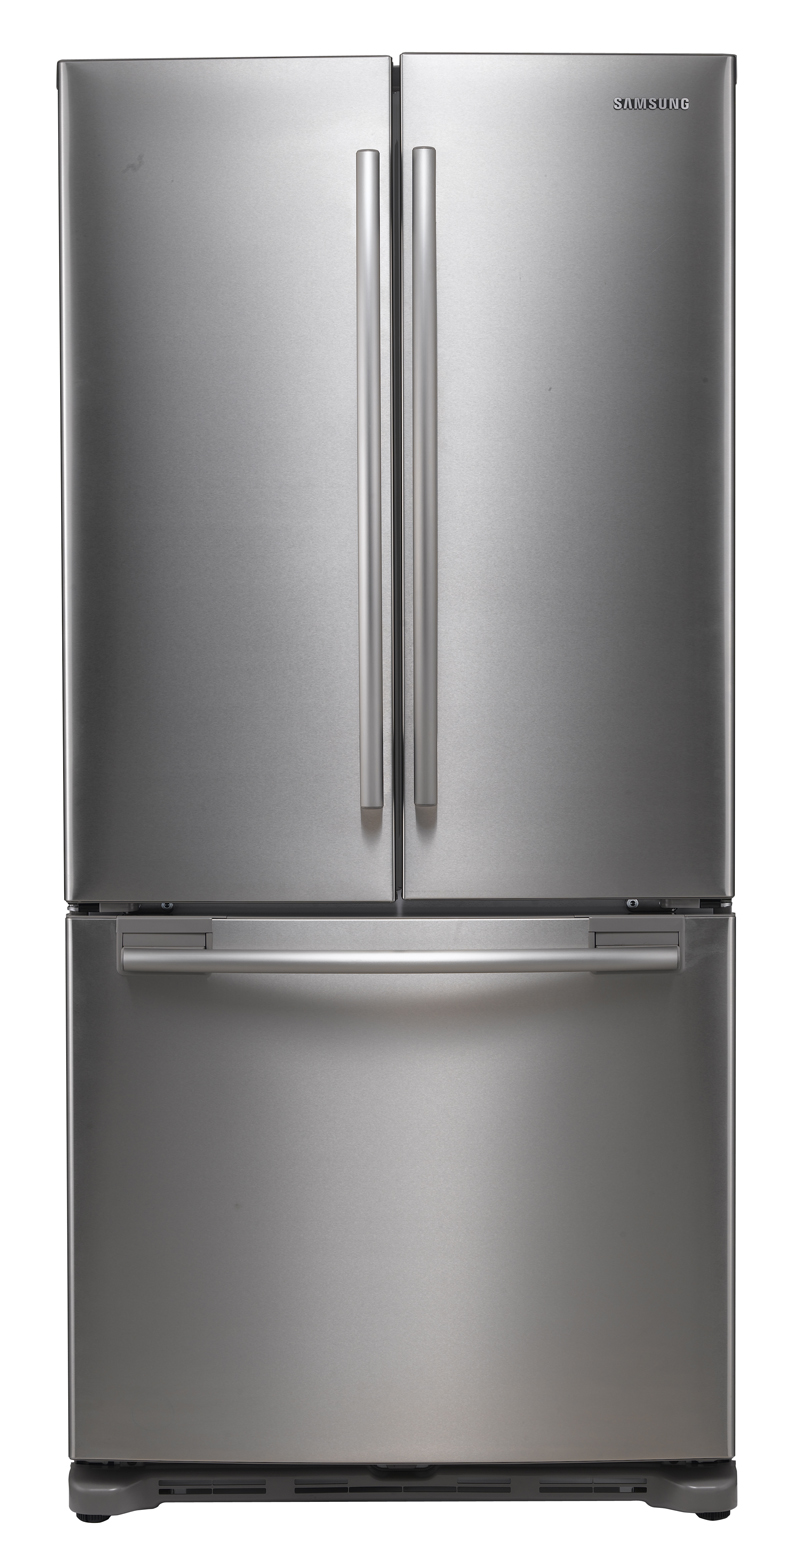 30 Inch Dishwasher